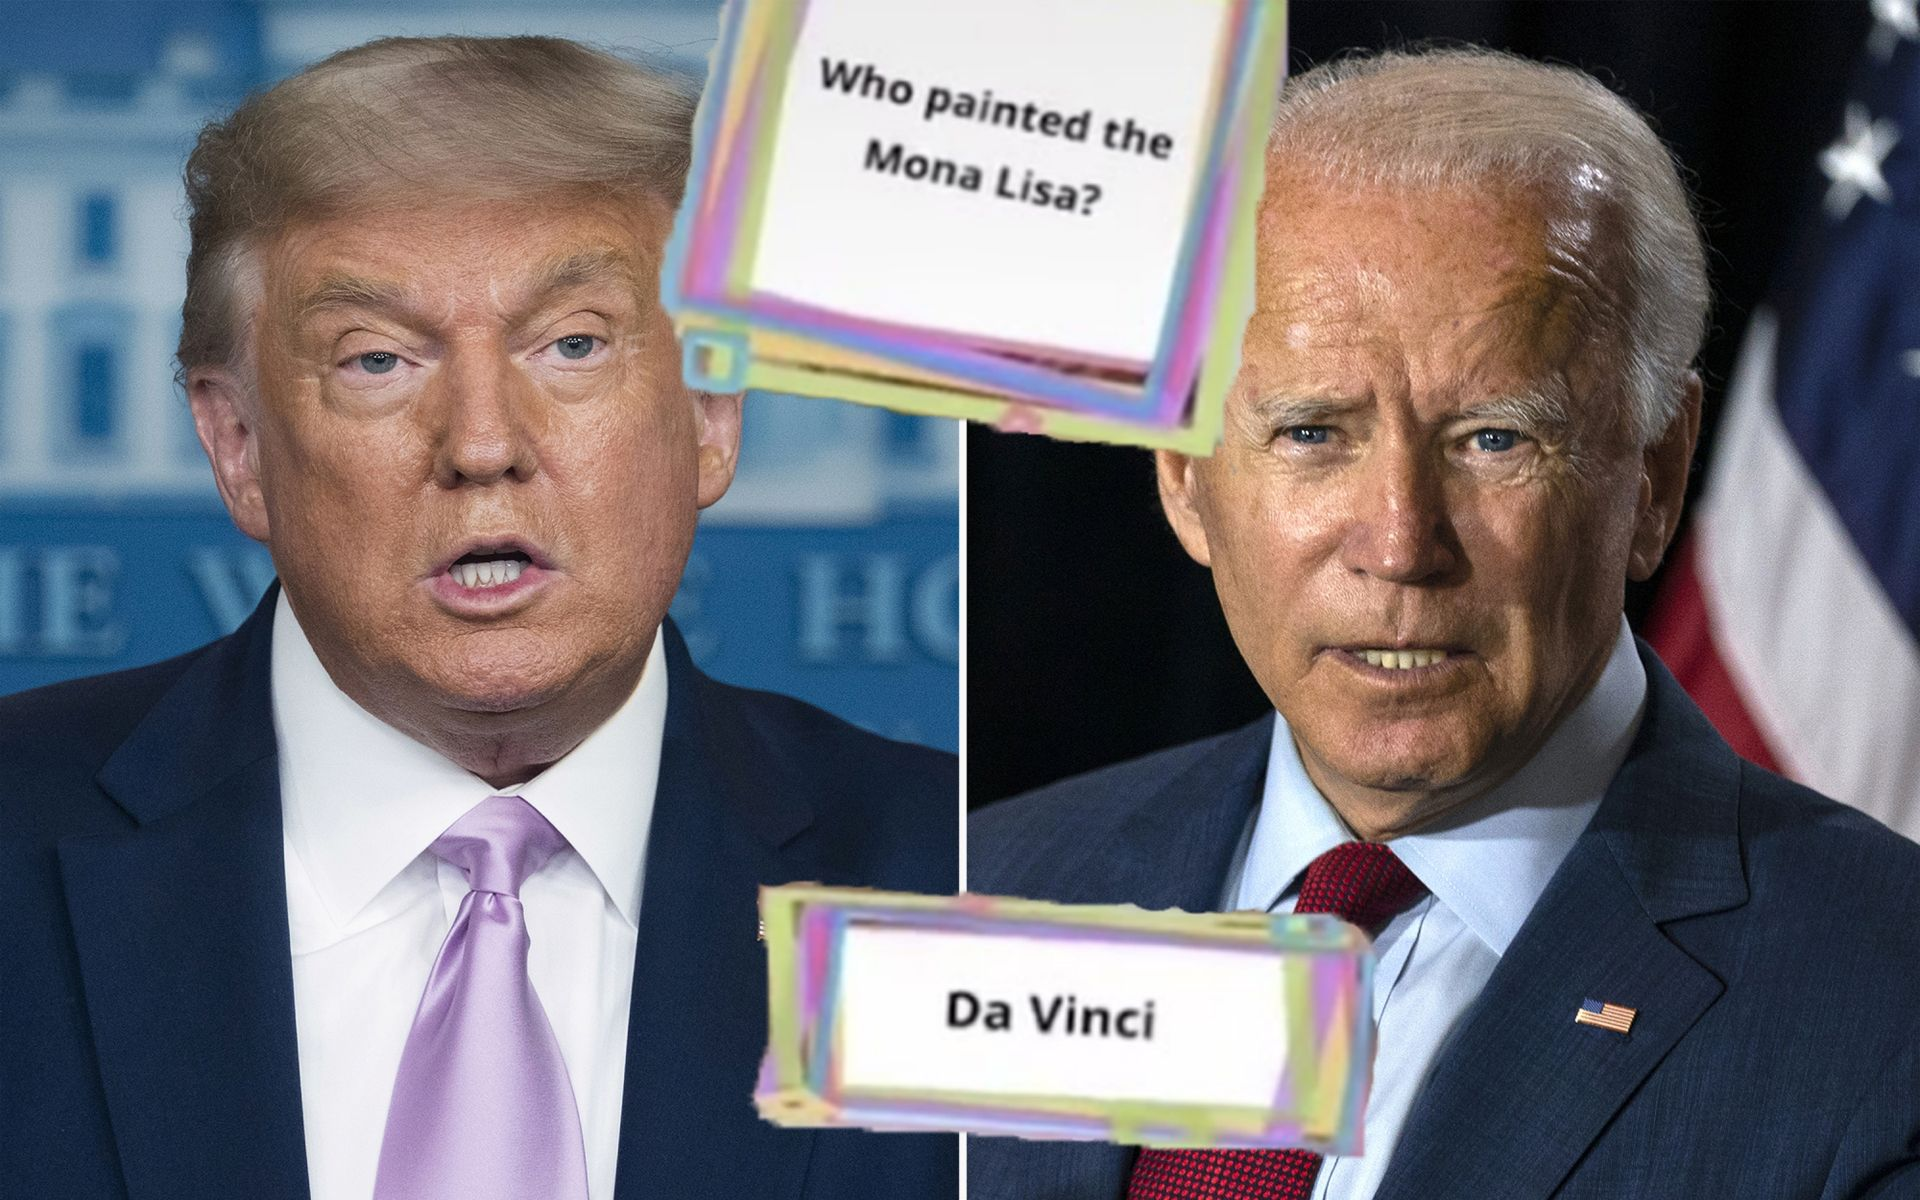 Both Trump And Biden Don't Know Who Painted Mona Lisa